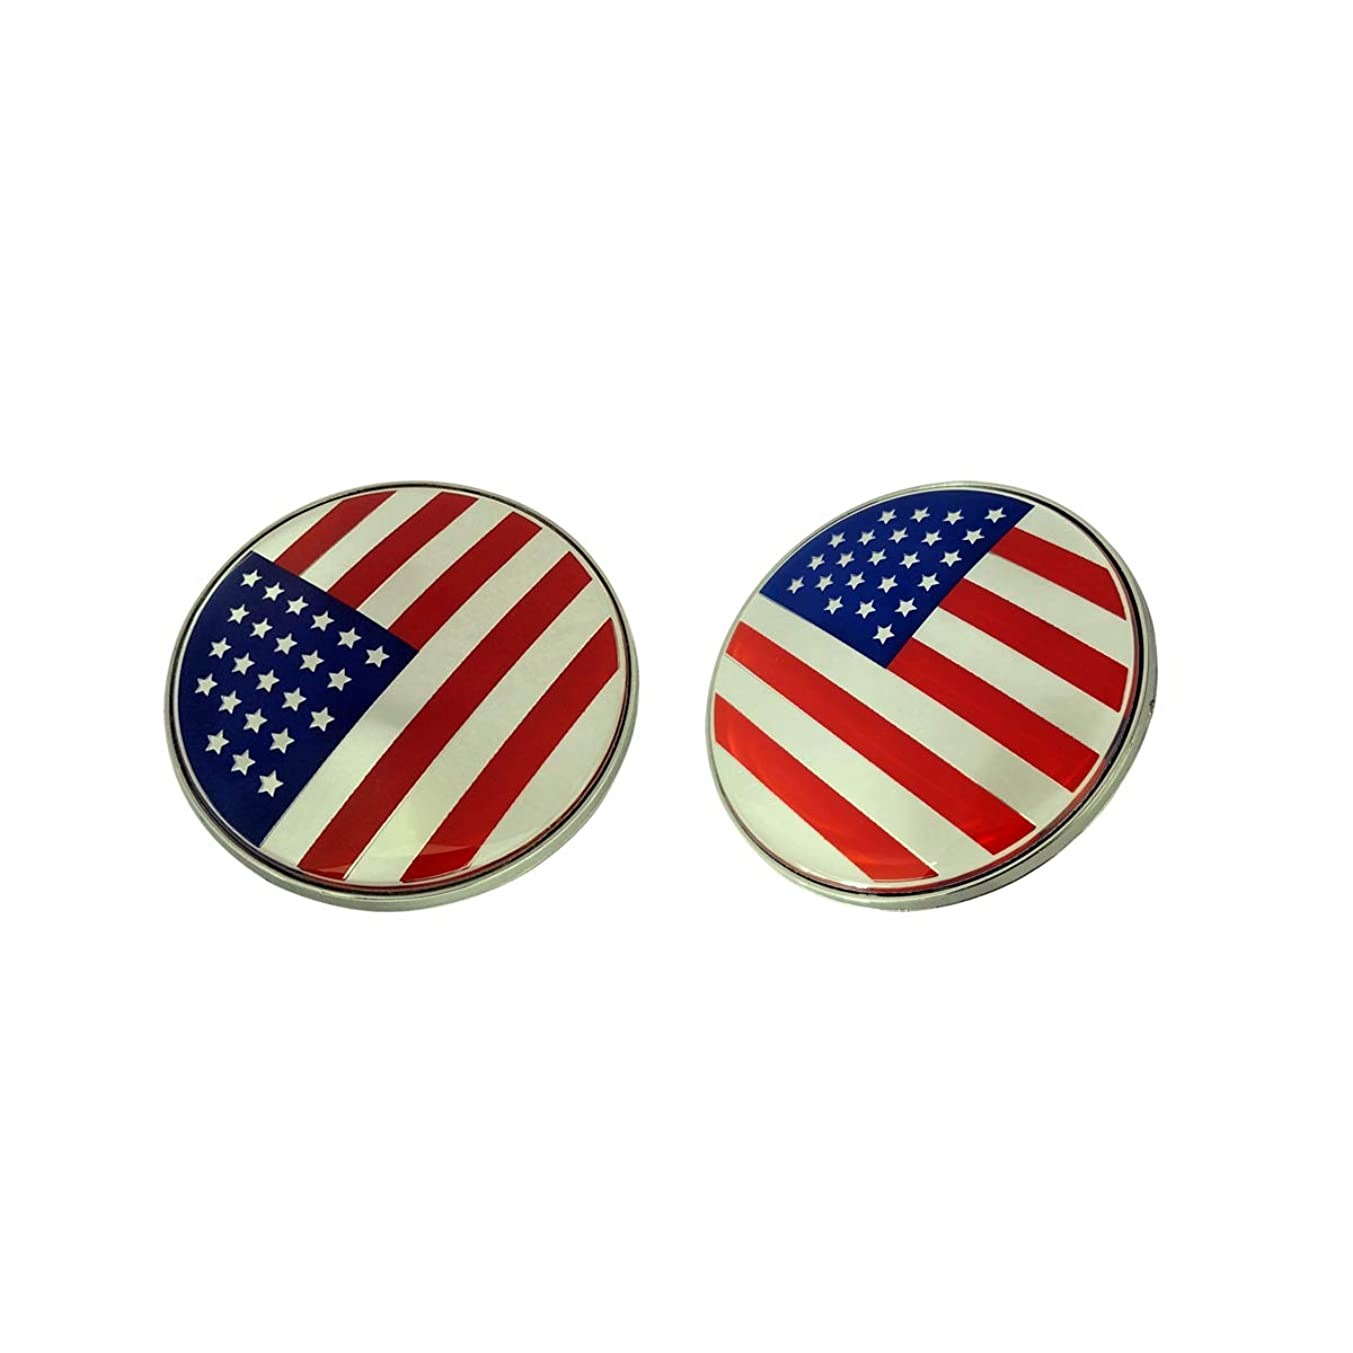 Vemblem 2pcs New Face Sporty Fashion Round 82mm Emblem Badge United States America USA Red Blue Silver Color 1x Front Hood + 1x Back Rear Trunk Replacement Compatible Fit For BMW Model M Power Cars